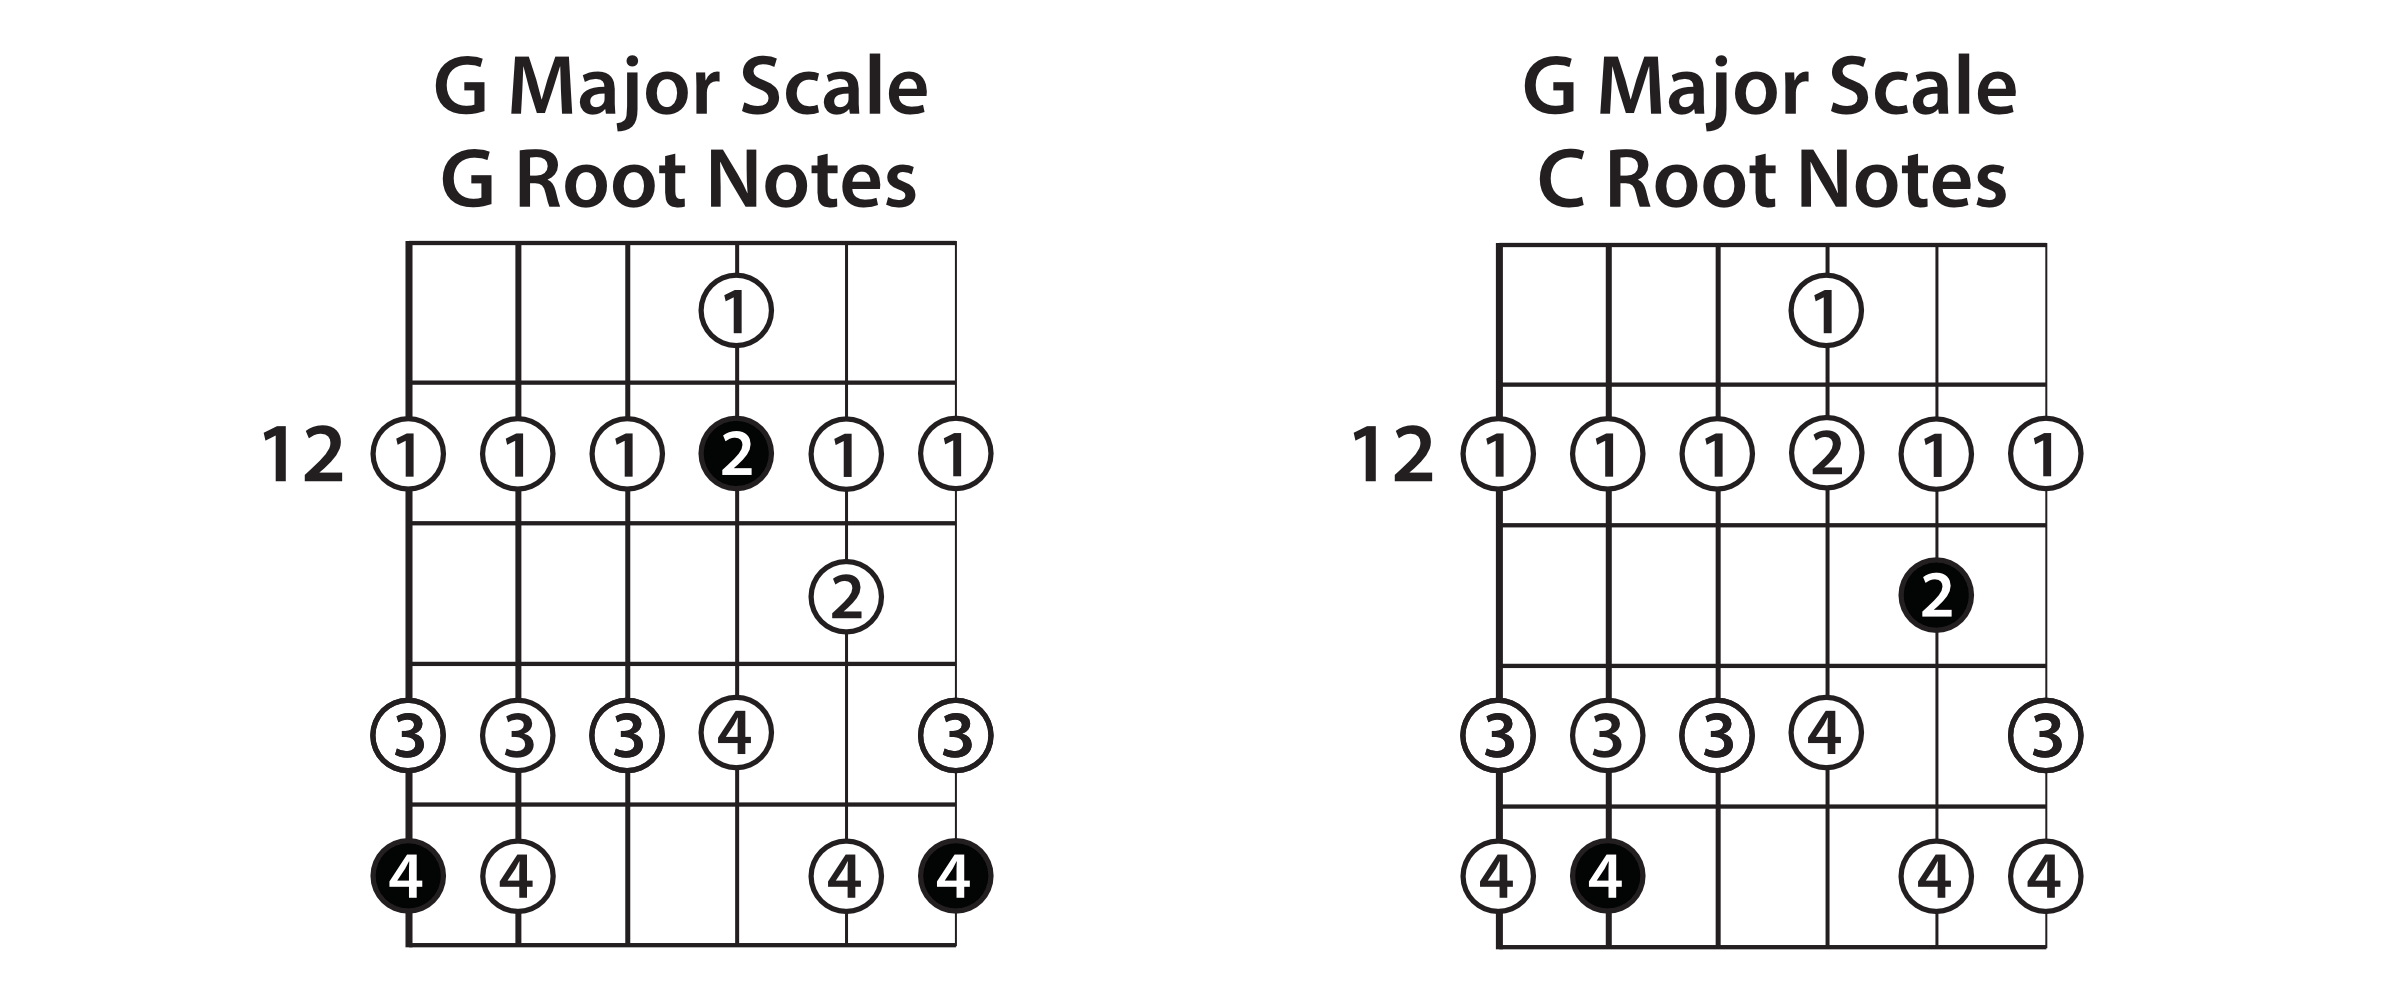 G Major Scale Chord Root Notes